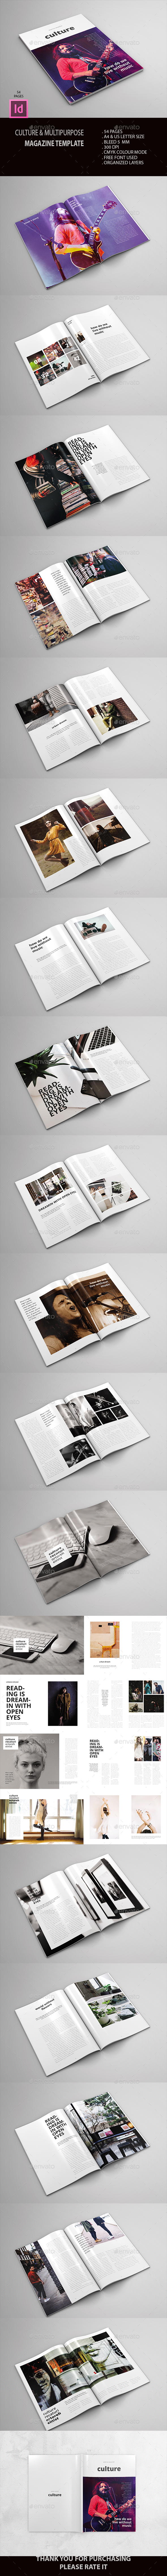 Culture & Multipurpose Magz - Magazines Print Templates